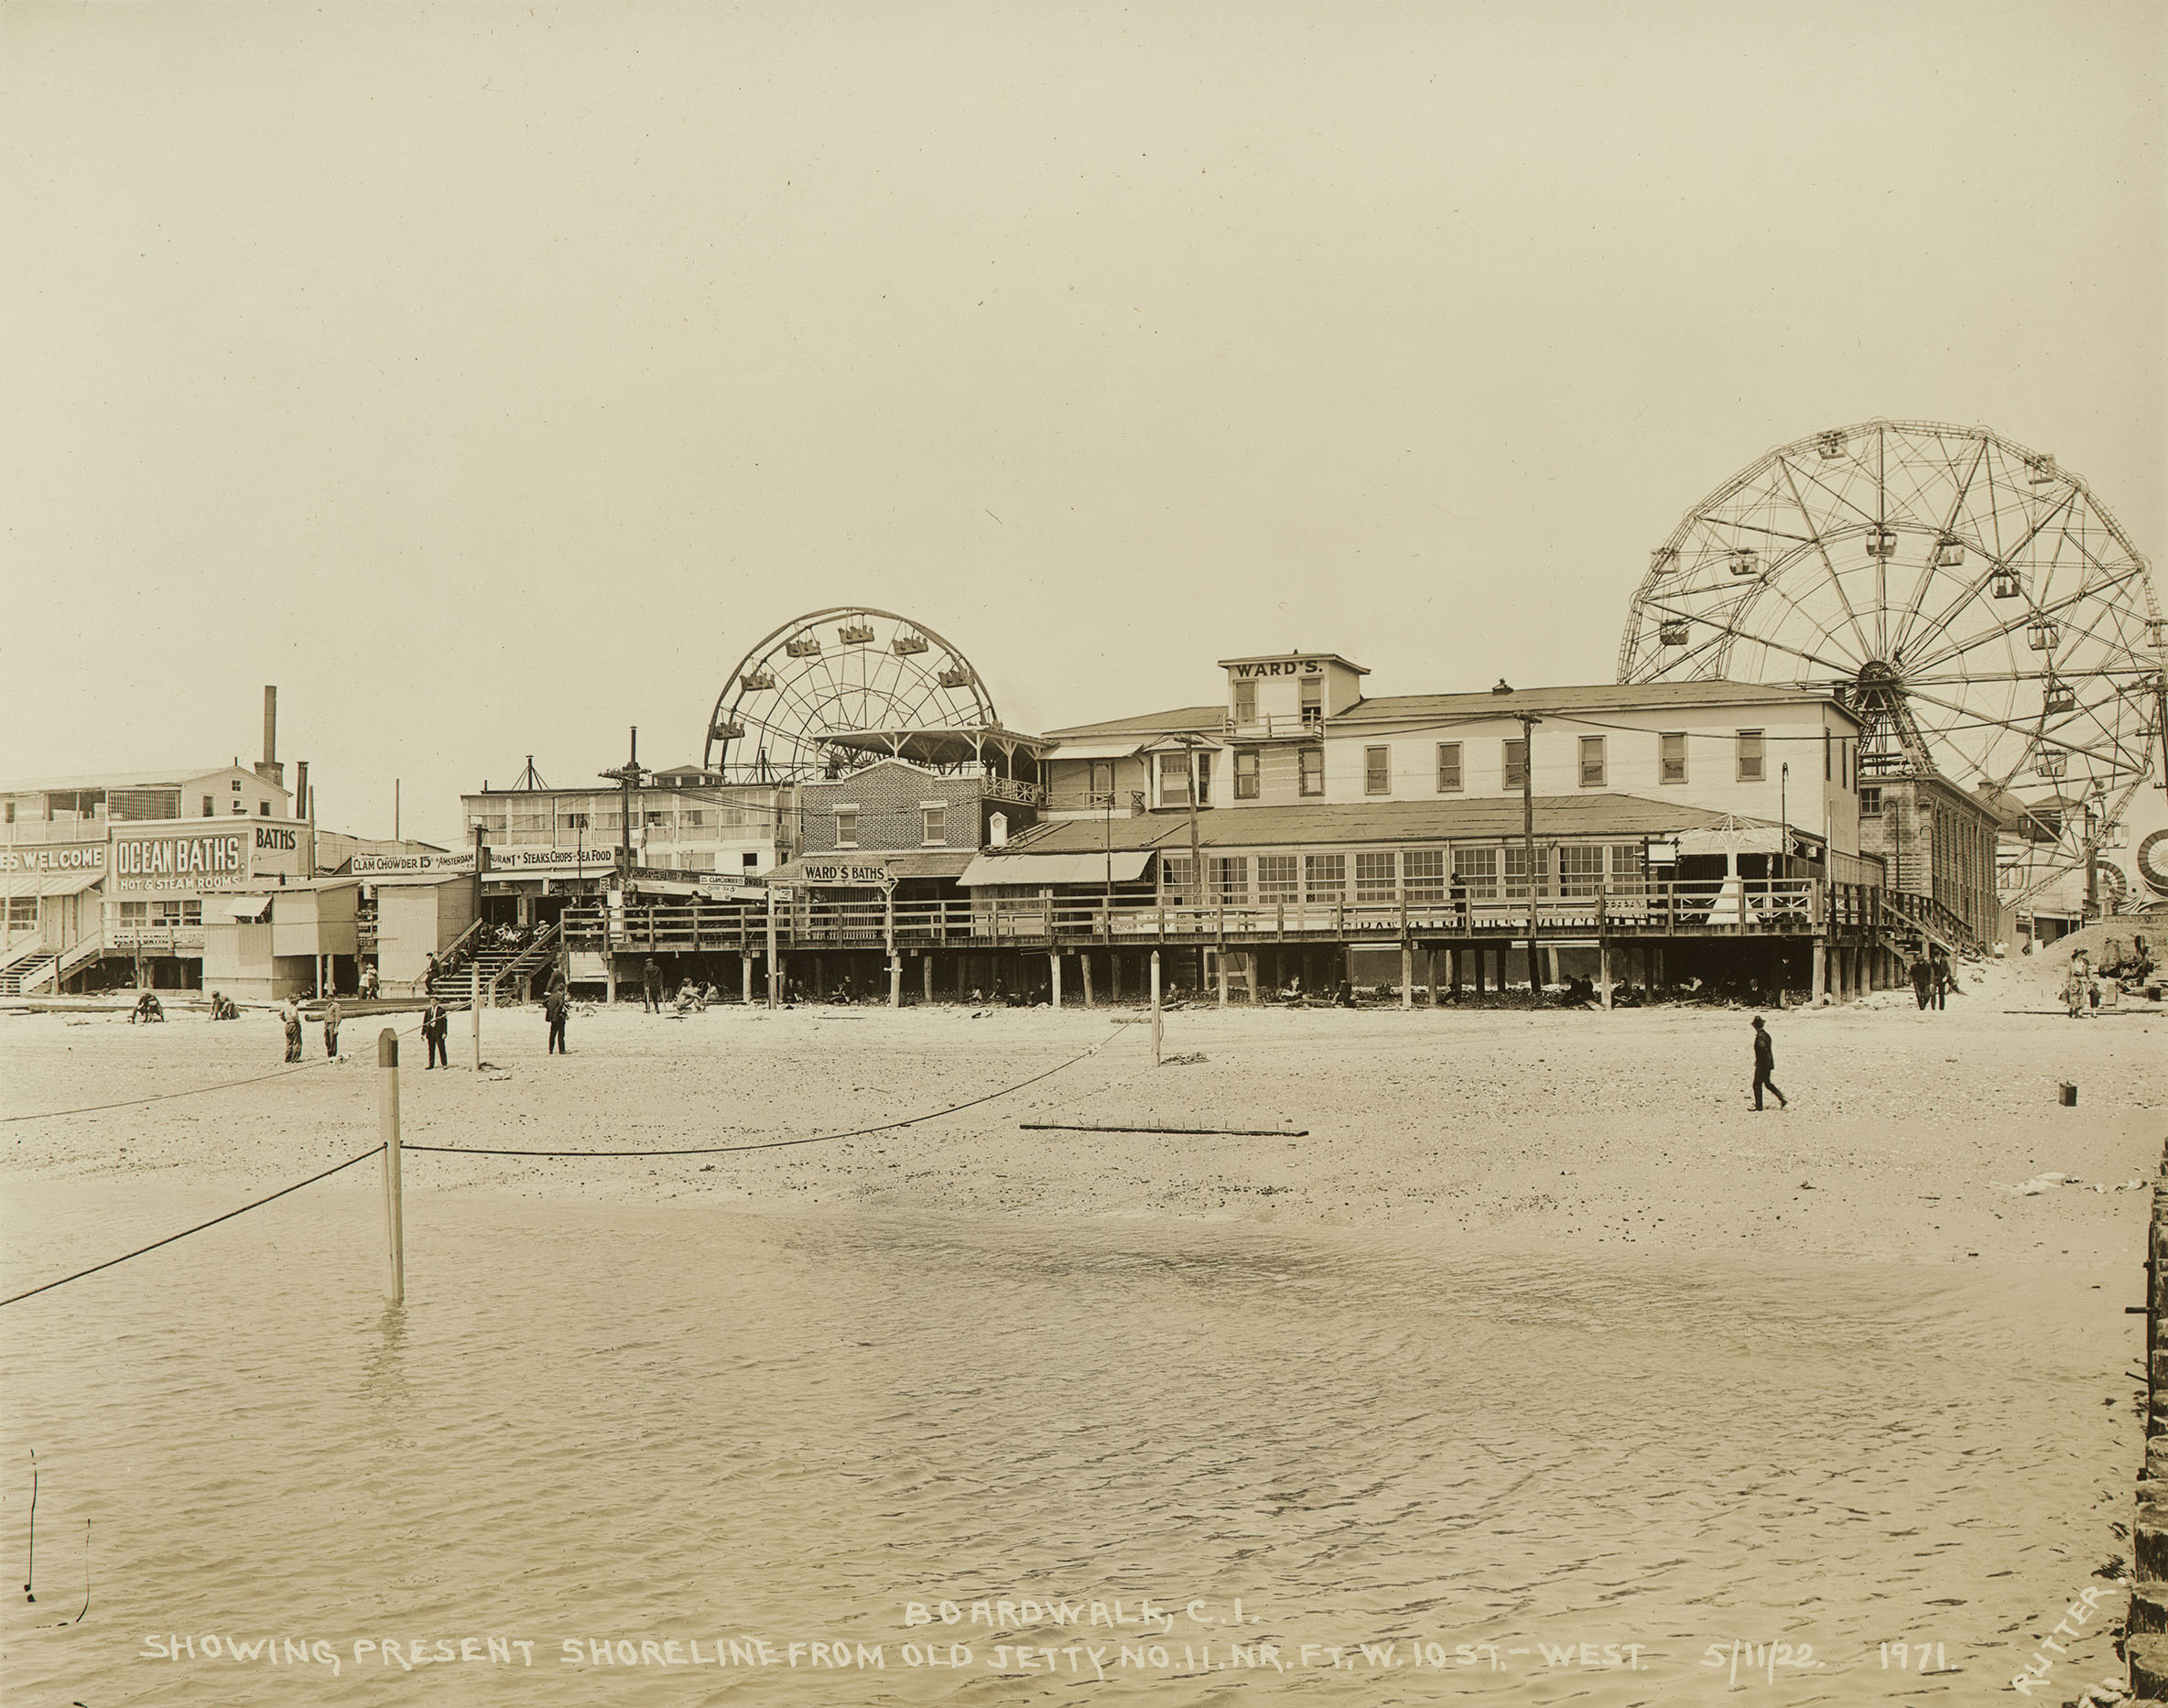 Coney Island Bathhouses and Ferris Wheels, May 11, 1922. Photo by E.E. Rutter, Borough President Brooklyn Collection, NYC Municipal Archives.